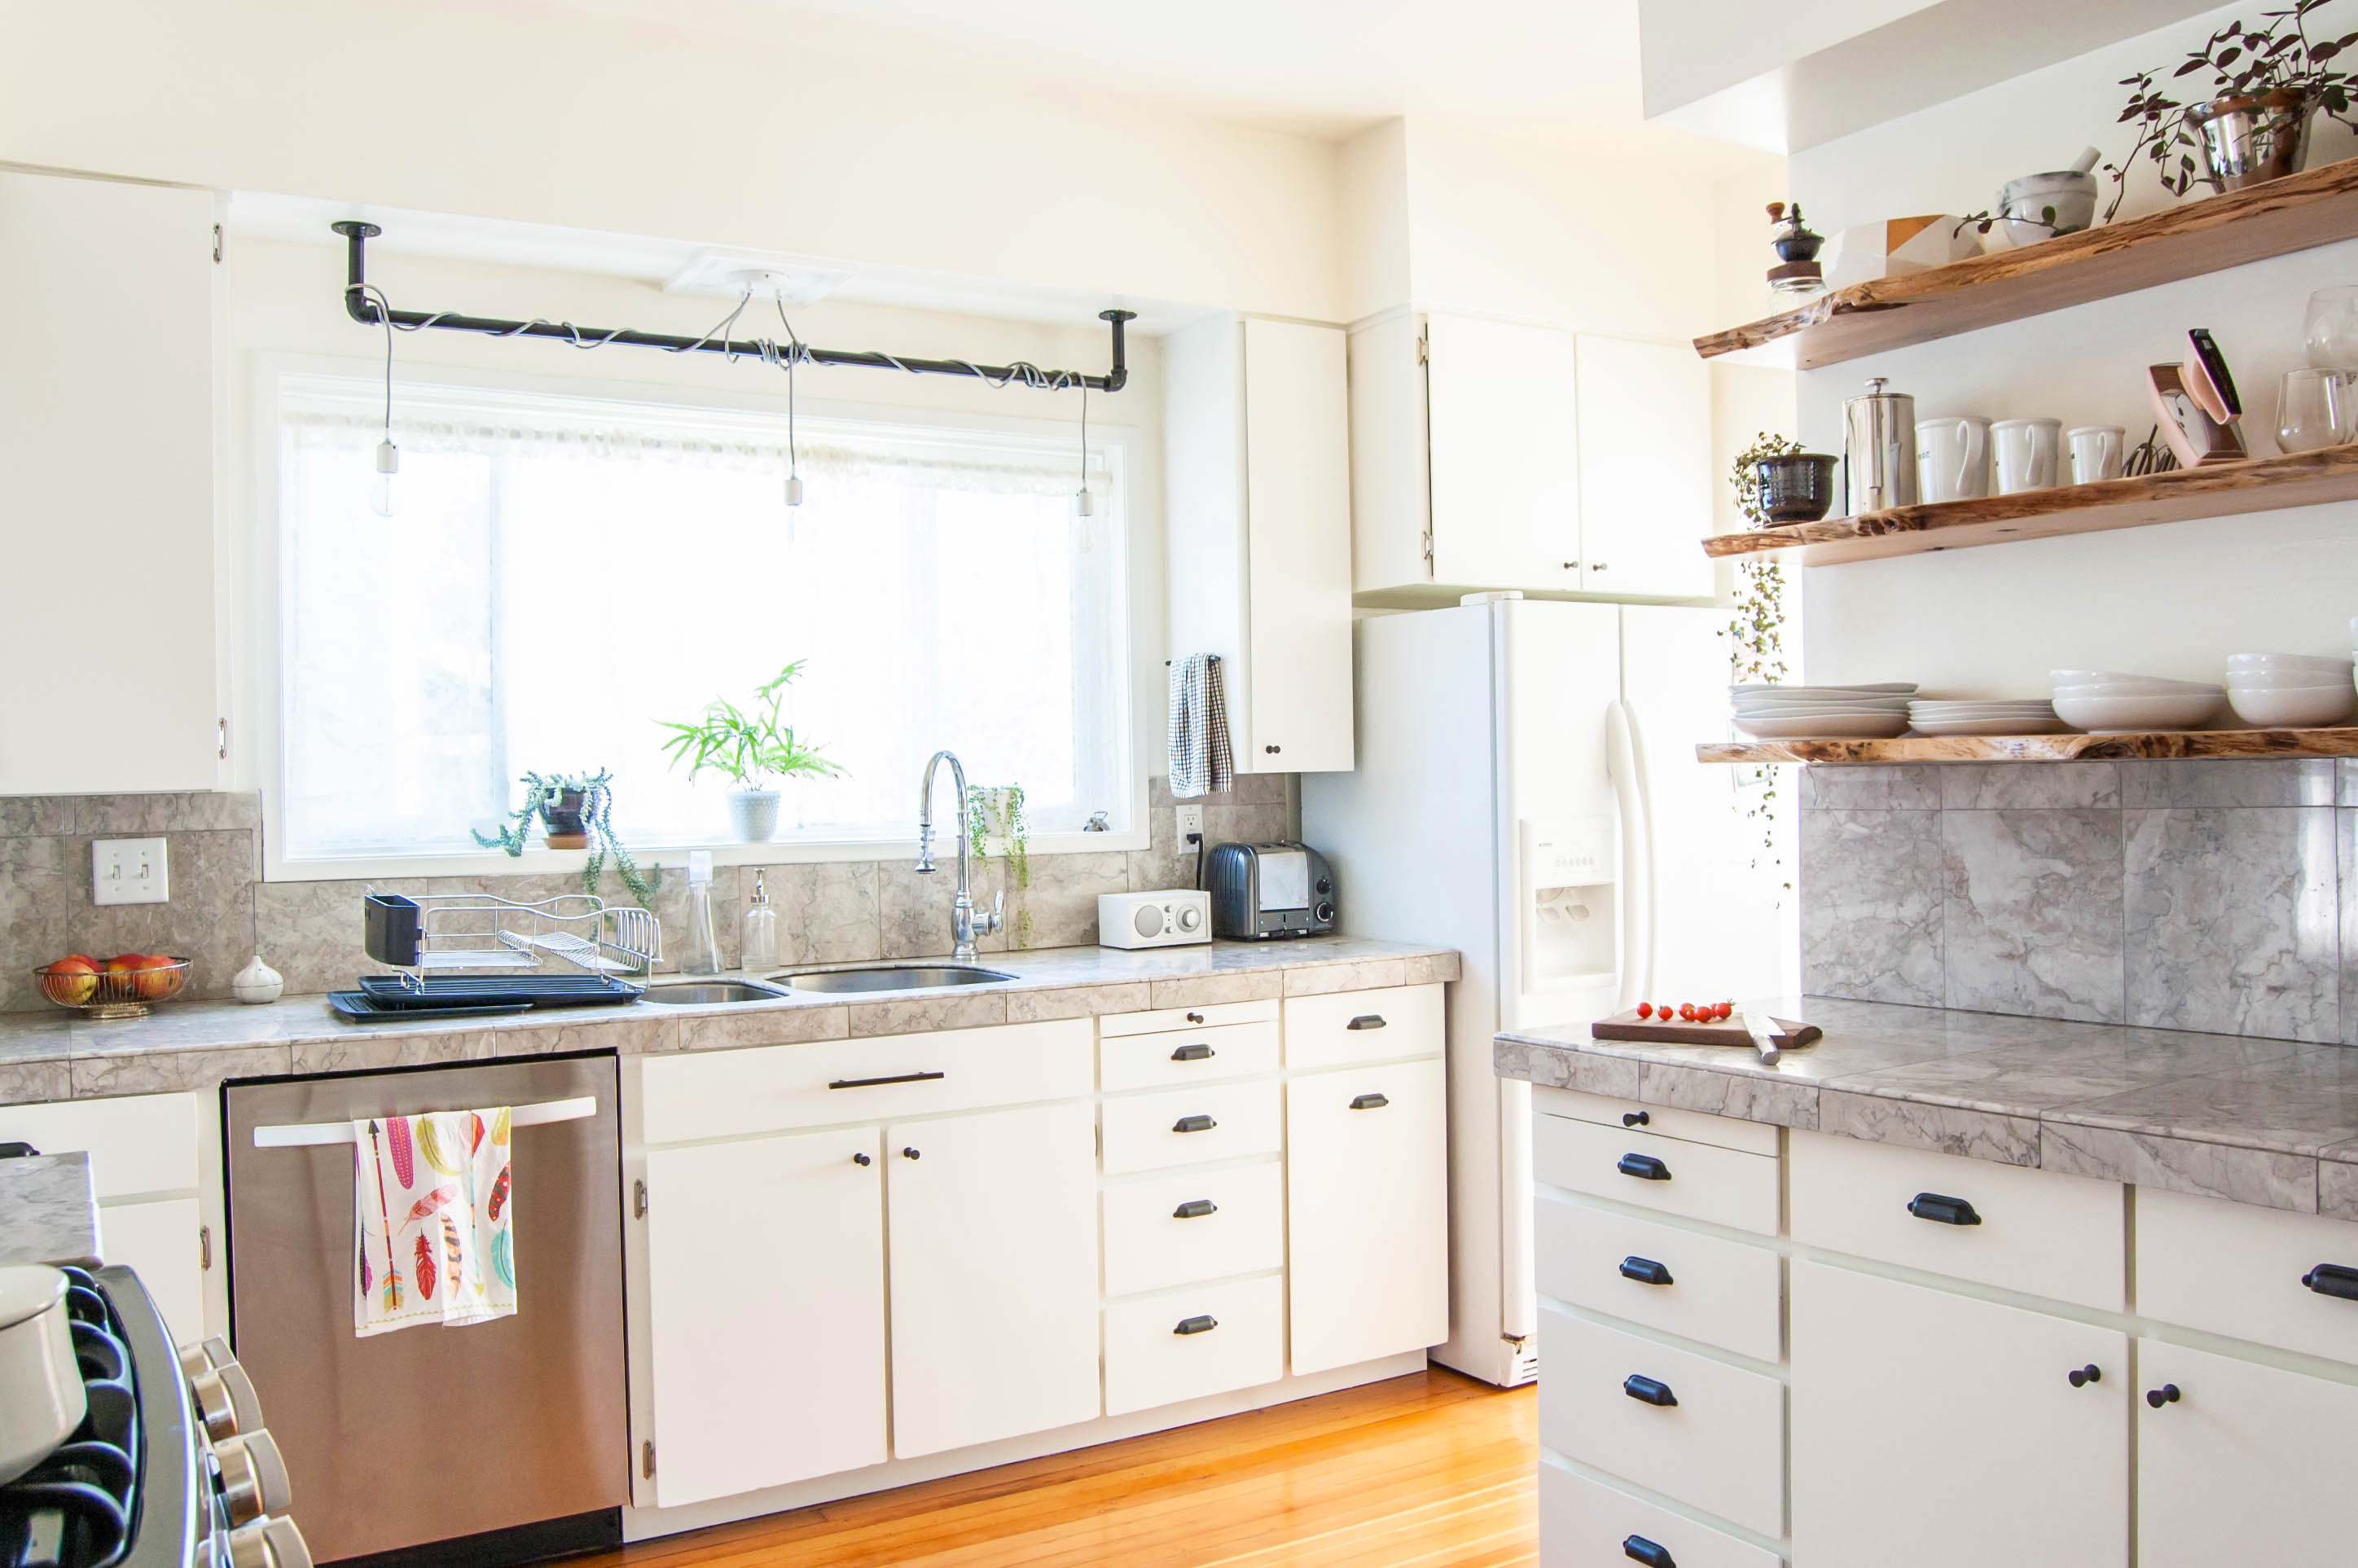 Easy Way To Make Own Kitchen Cabinets 8 Ways To Create Storage In A Small Kitchen You Own Kitchn